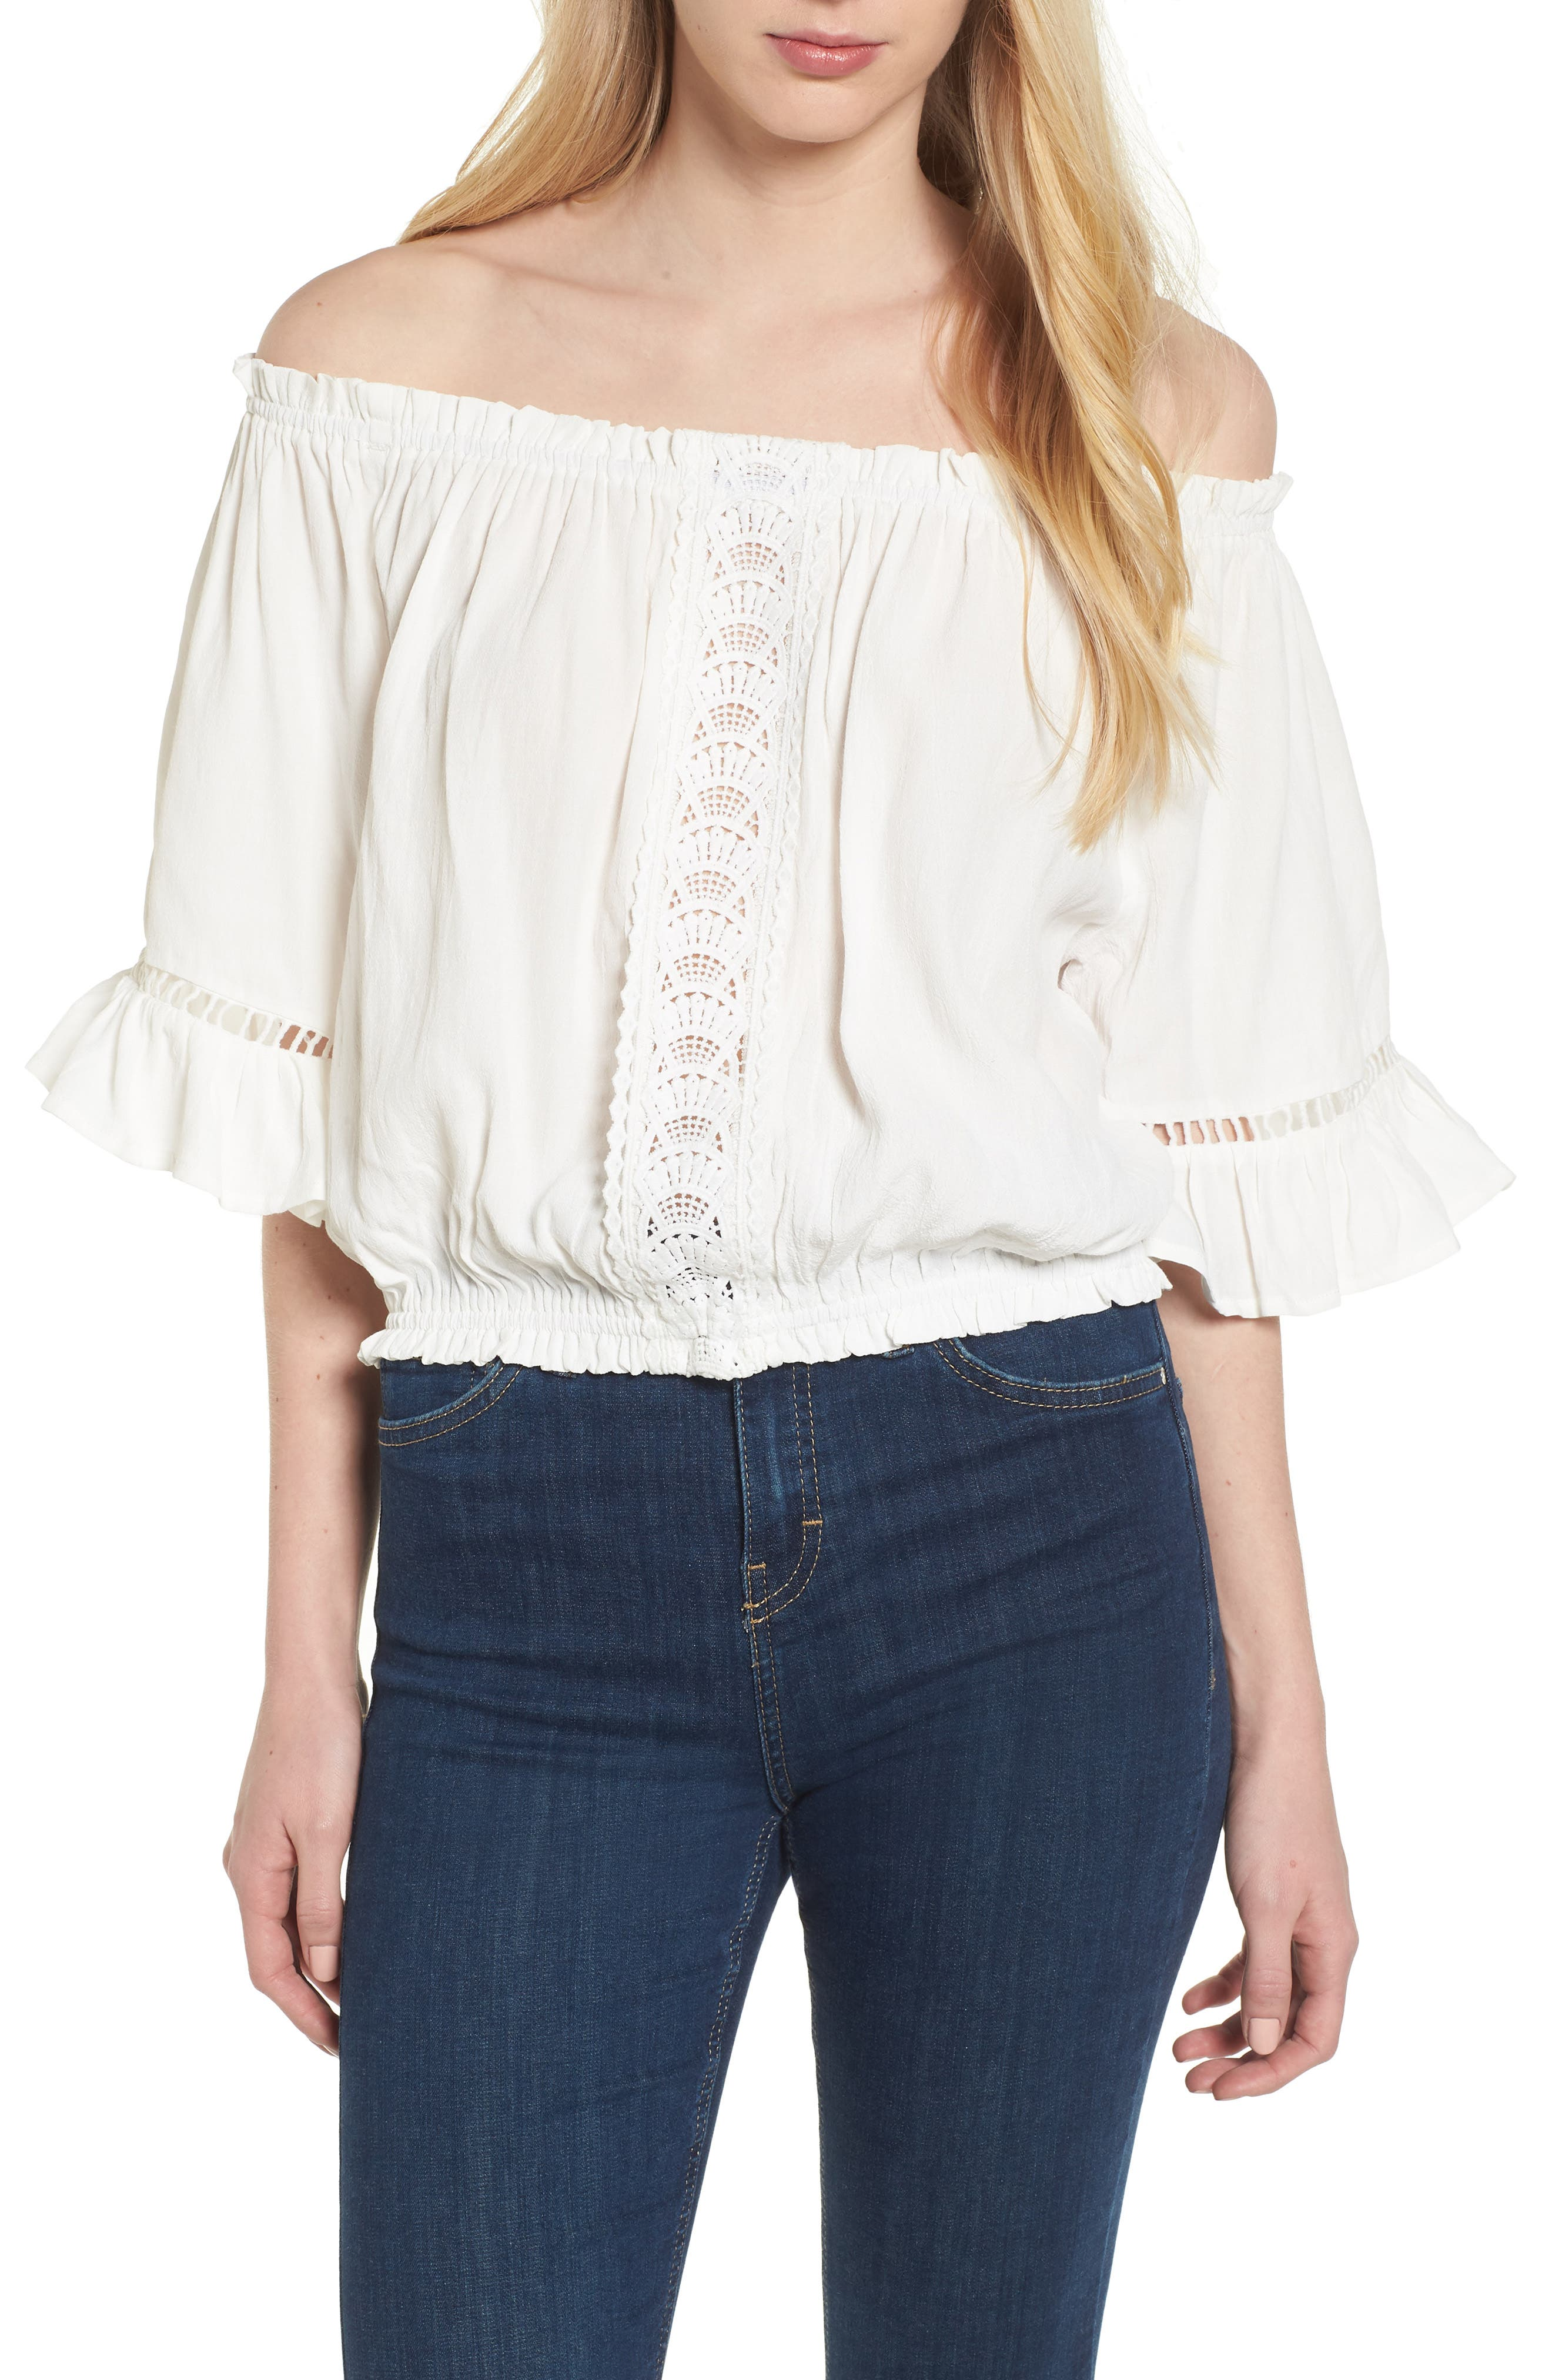 Bishop + Young Off the Shoulder Poet Top,                             Main thumbnail 1, color,                             White